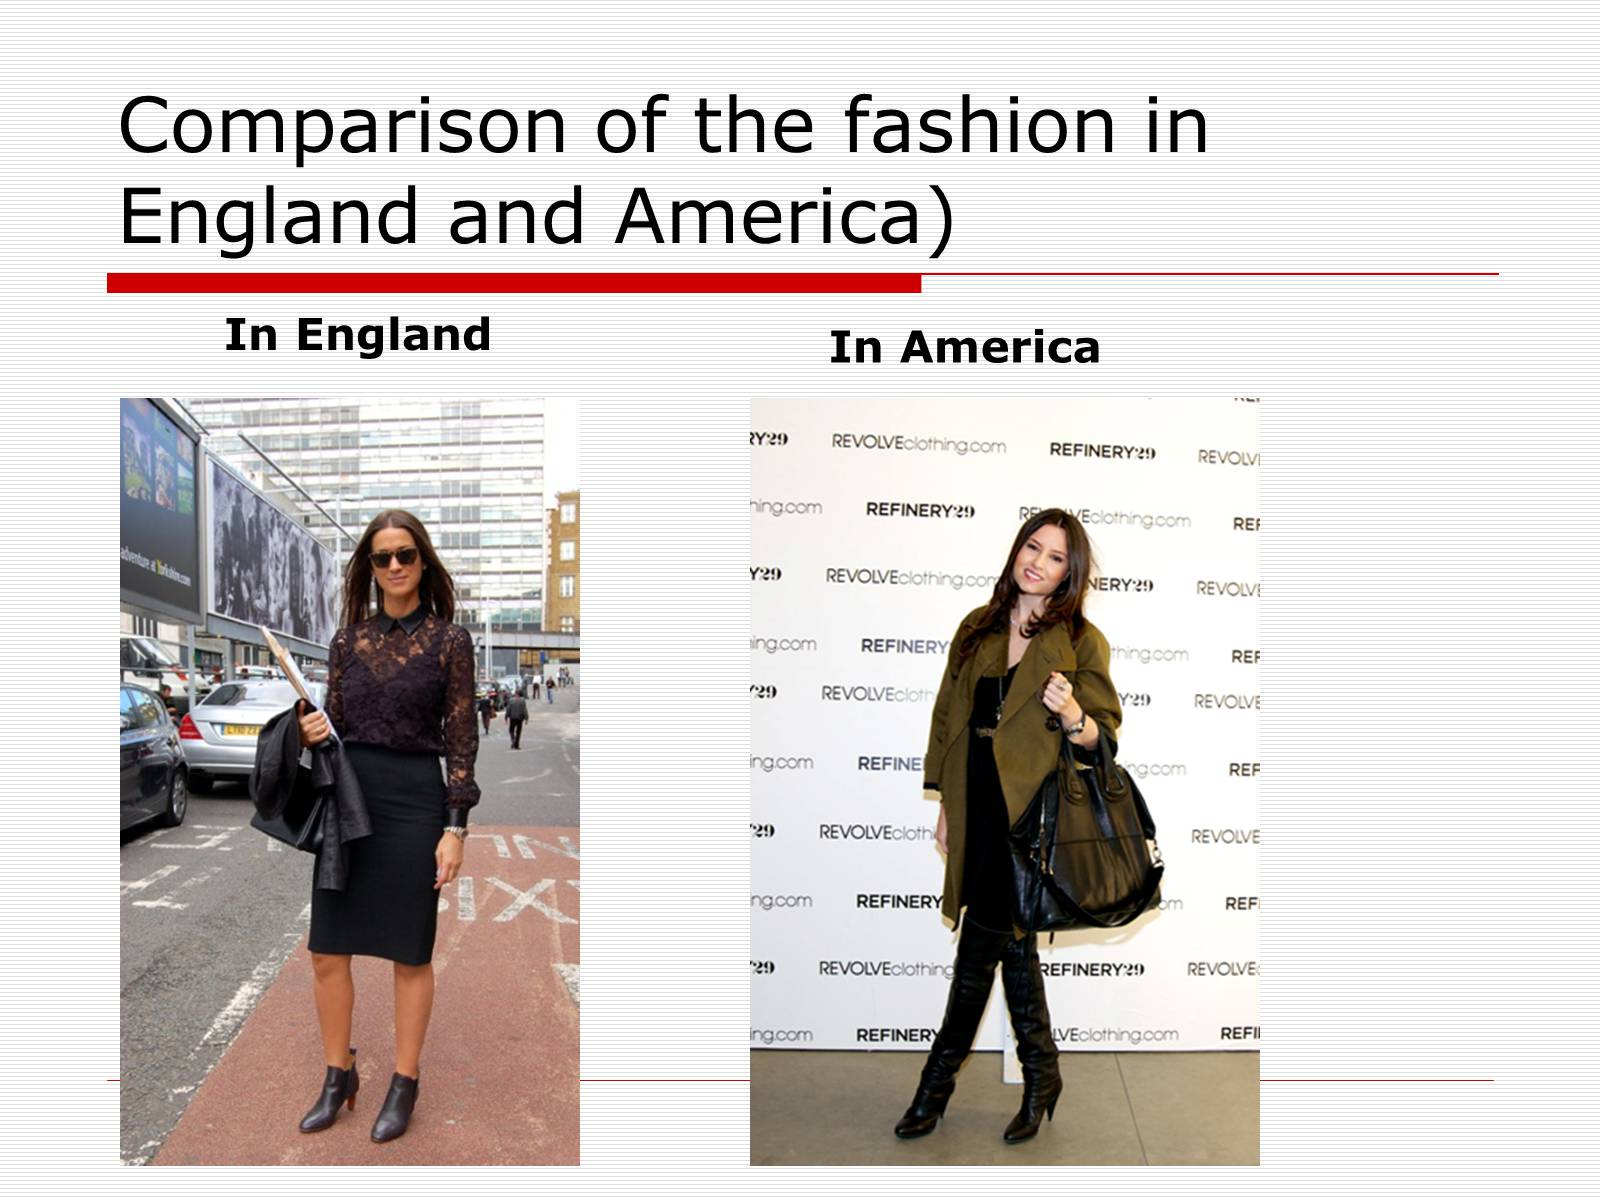 Презентація на тему «Comparison of the fashion in England and America» - Слайд #8